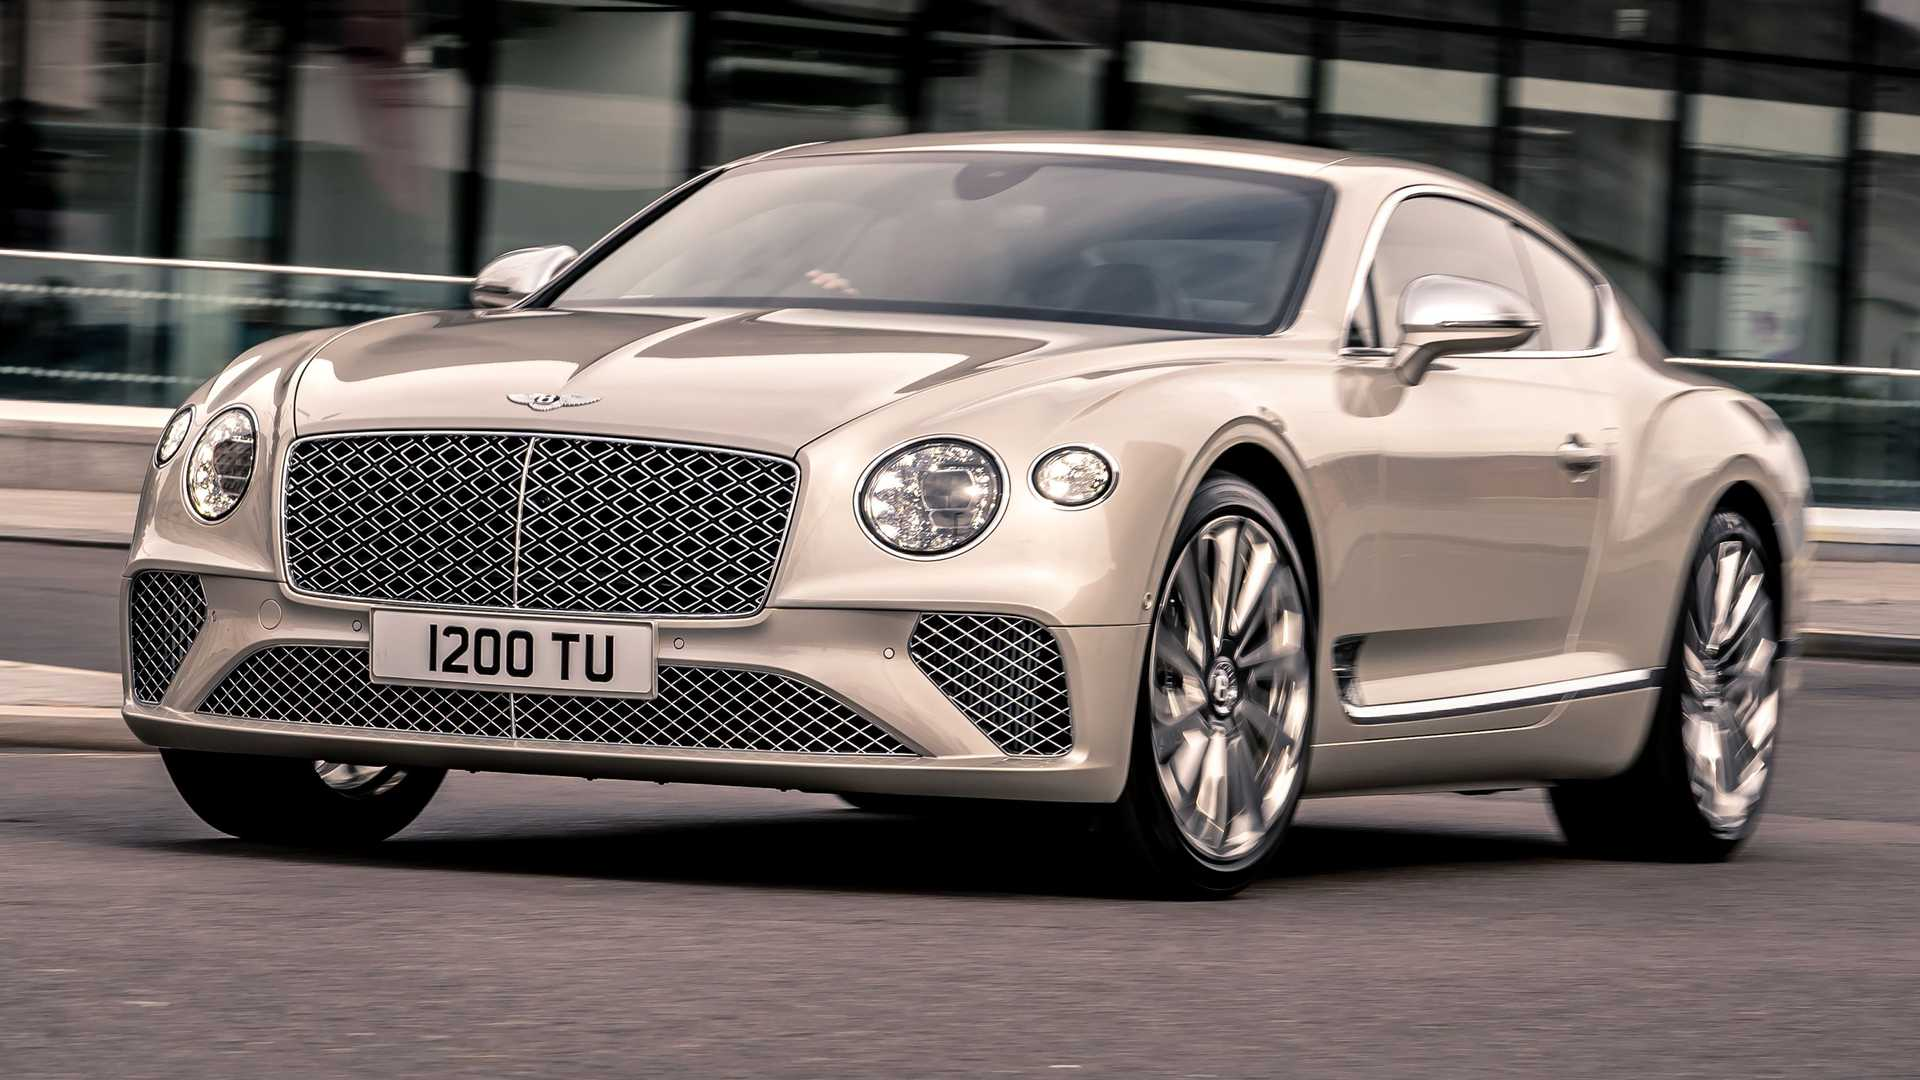 Bentley Mulliner has prepared an ultra-deluxe take on the Continental GT coupe for the Salon Privé show in Blenheim Palace coming up on next Tuesday, September 22, 2020.